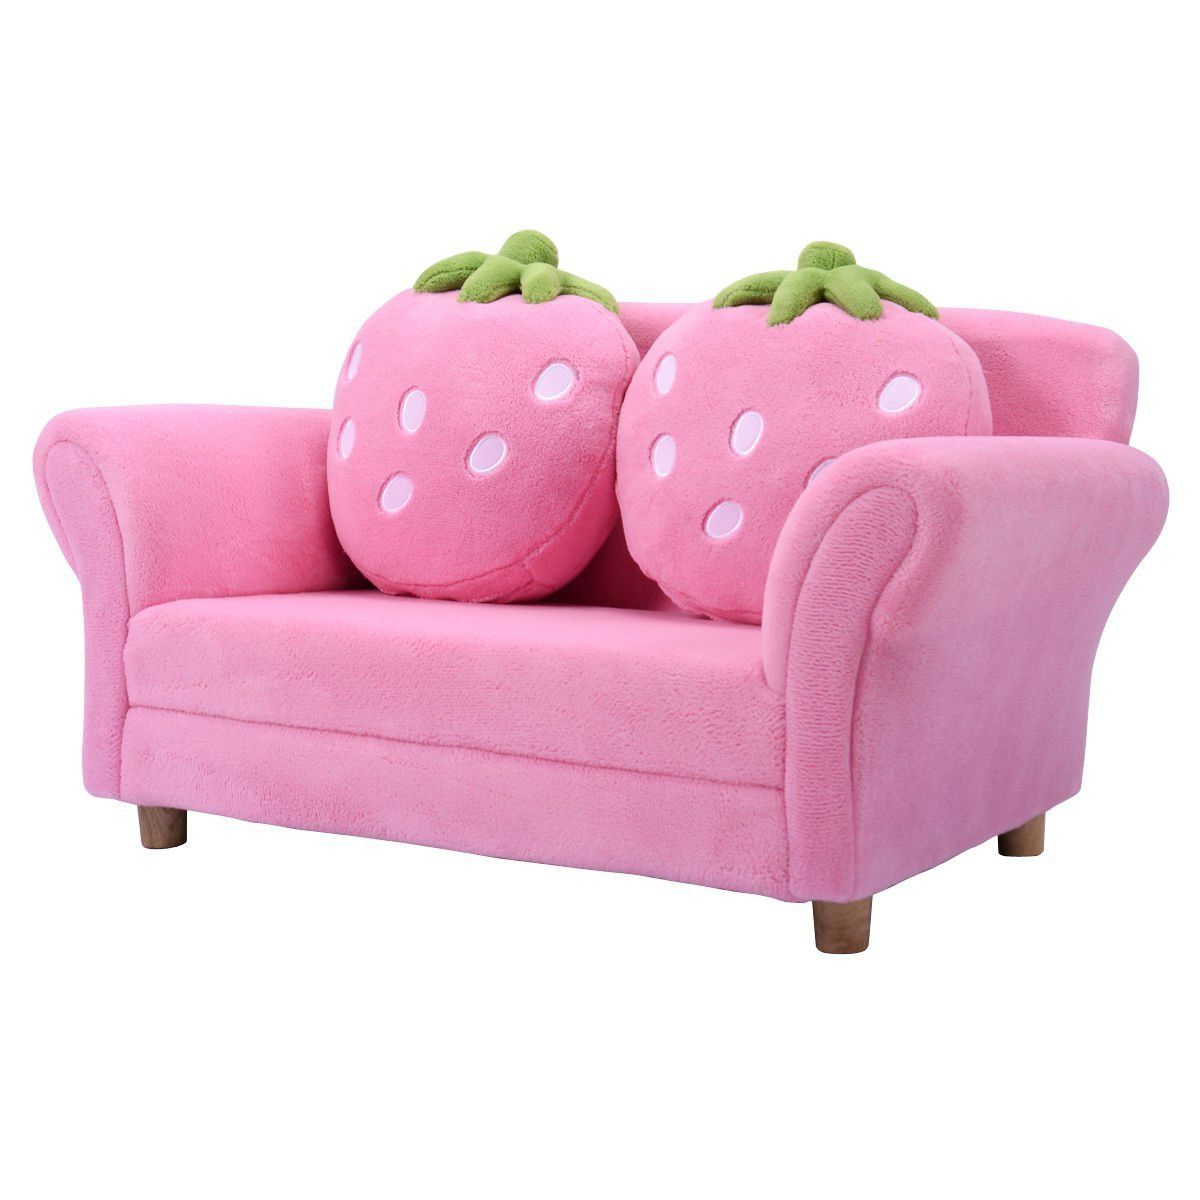 Most Recent Childrens Sofa Bed Chairs With Regard To Pinsofascouch On Sofas & Couches (Gallery 20 of 20)